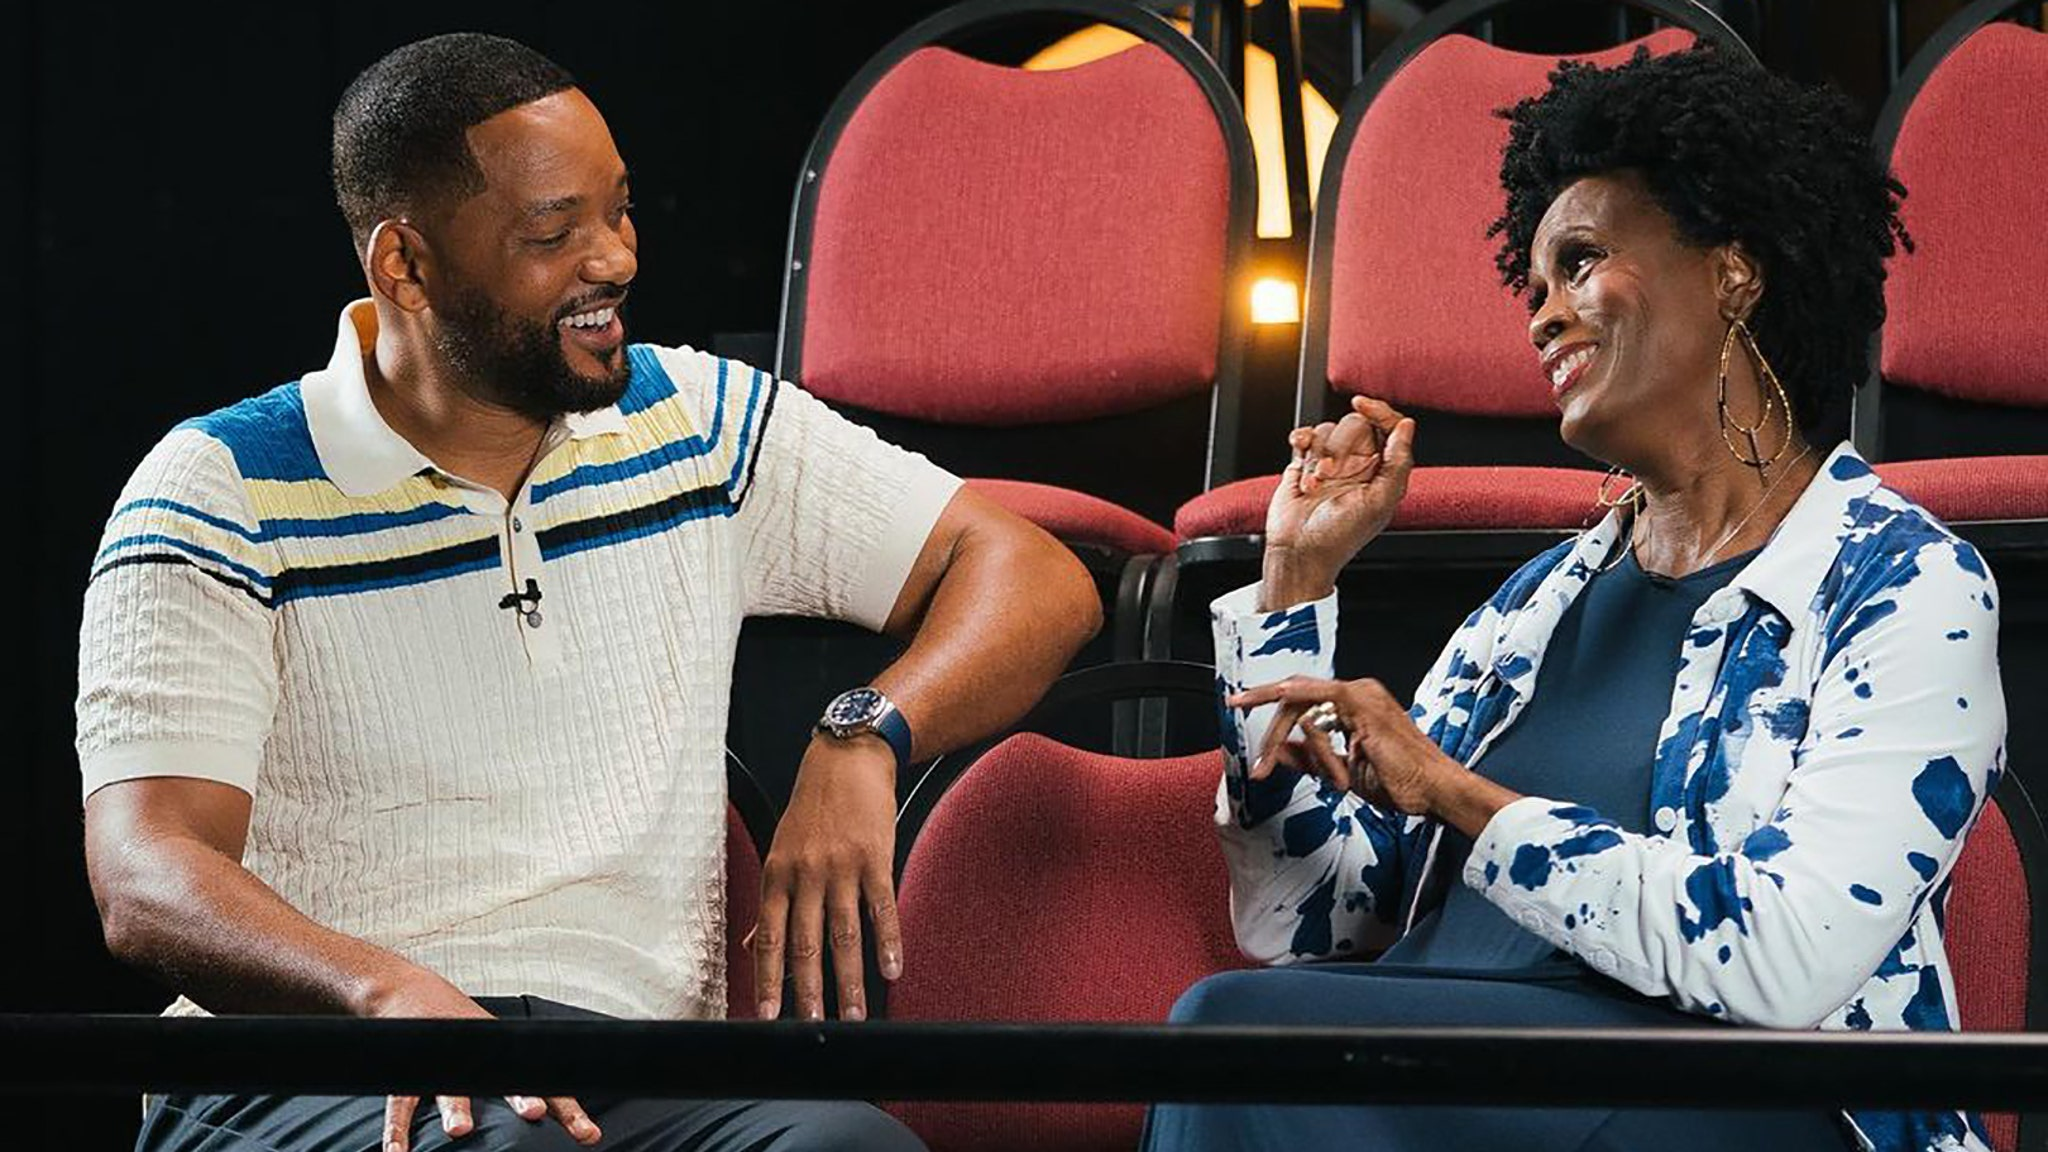 Janet Hubert Confronts Will Smith During Fresh Prince Reunion: 'I Lost Everything'